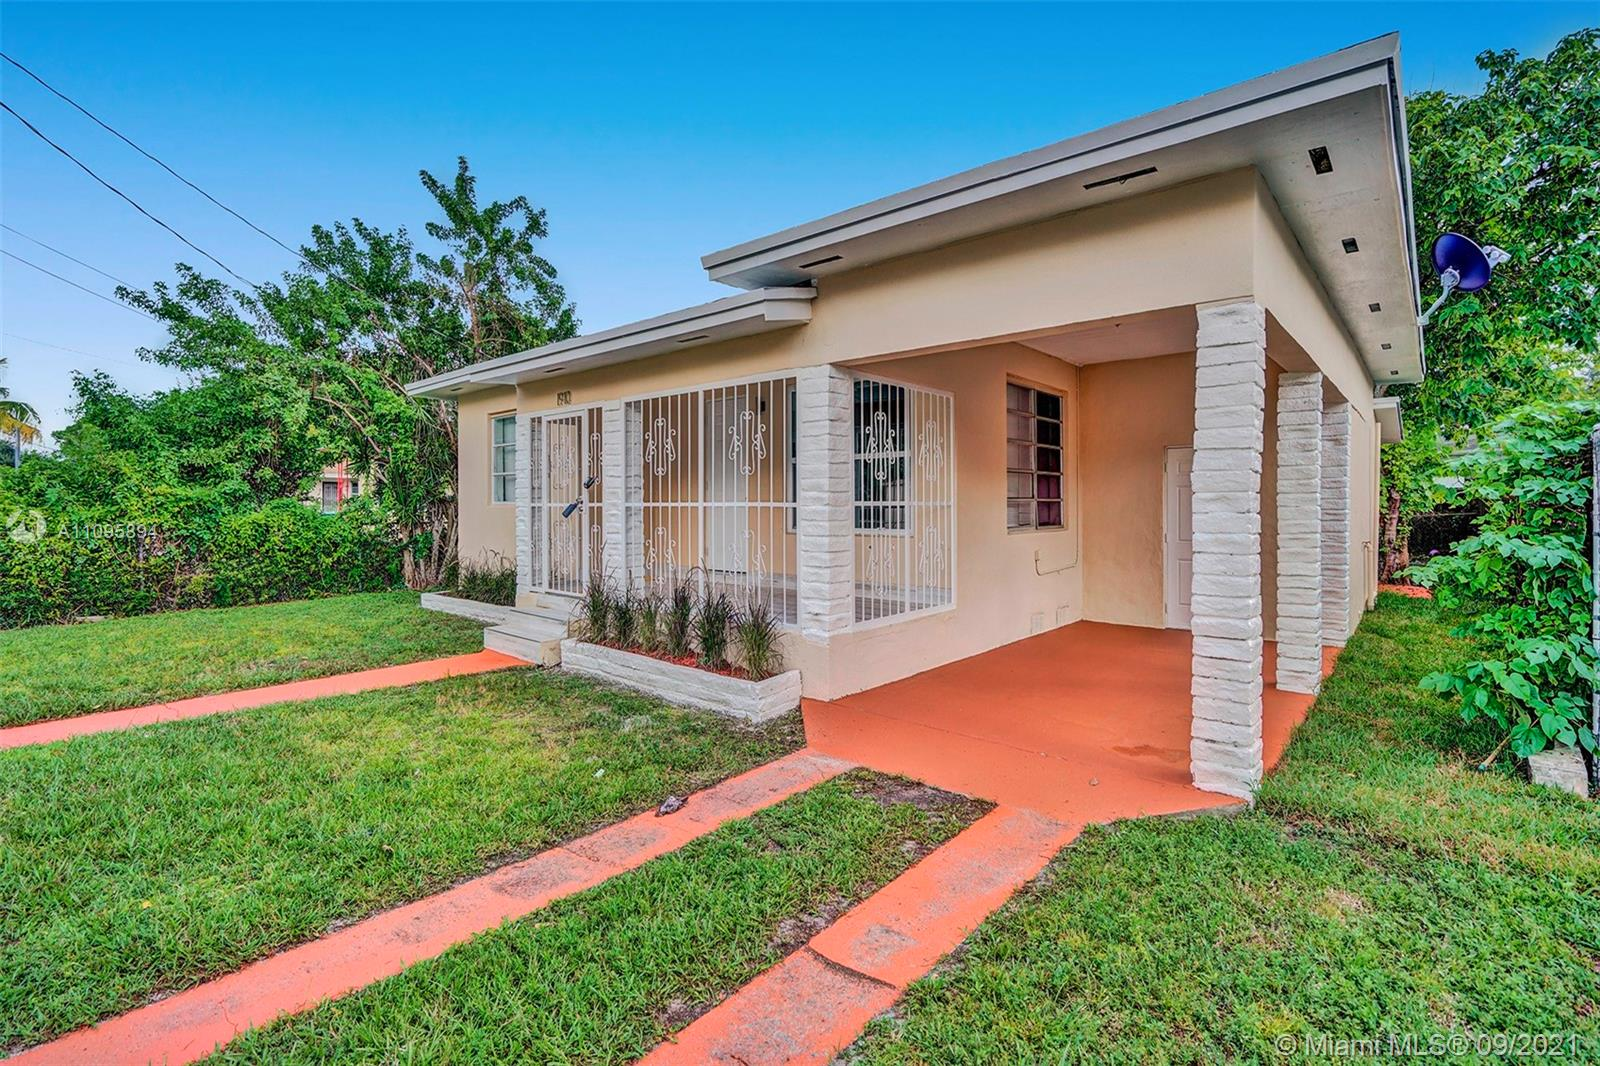 Single Family Home,For Sale,1910 NW 66th St, Miami, Florida 33147,Brickell,realty,broker,condos near me